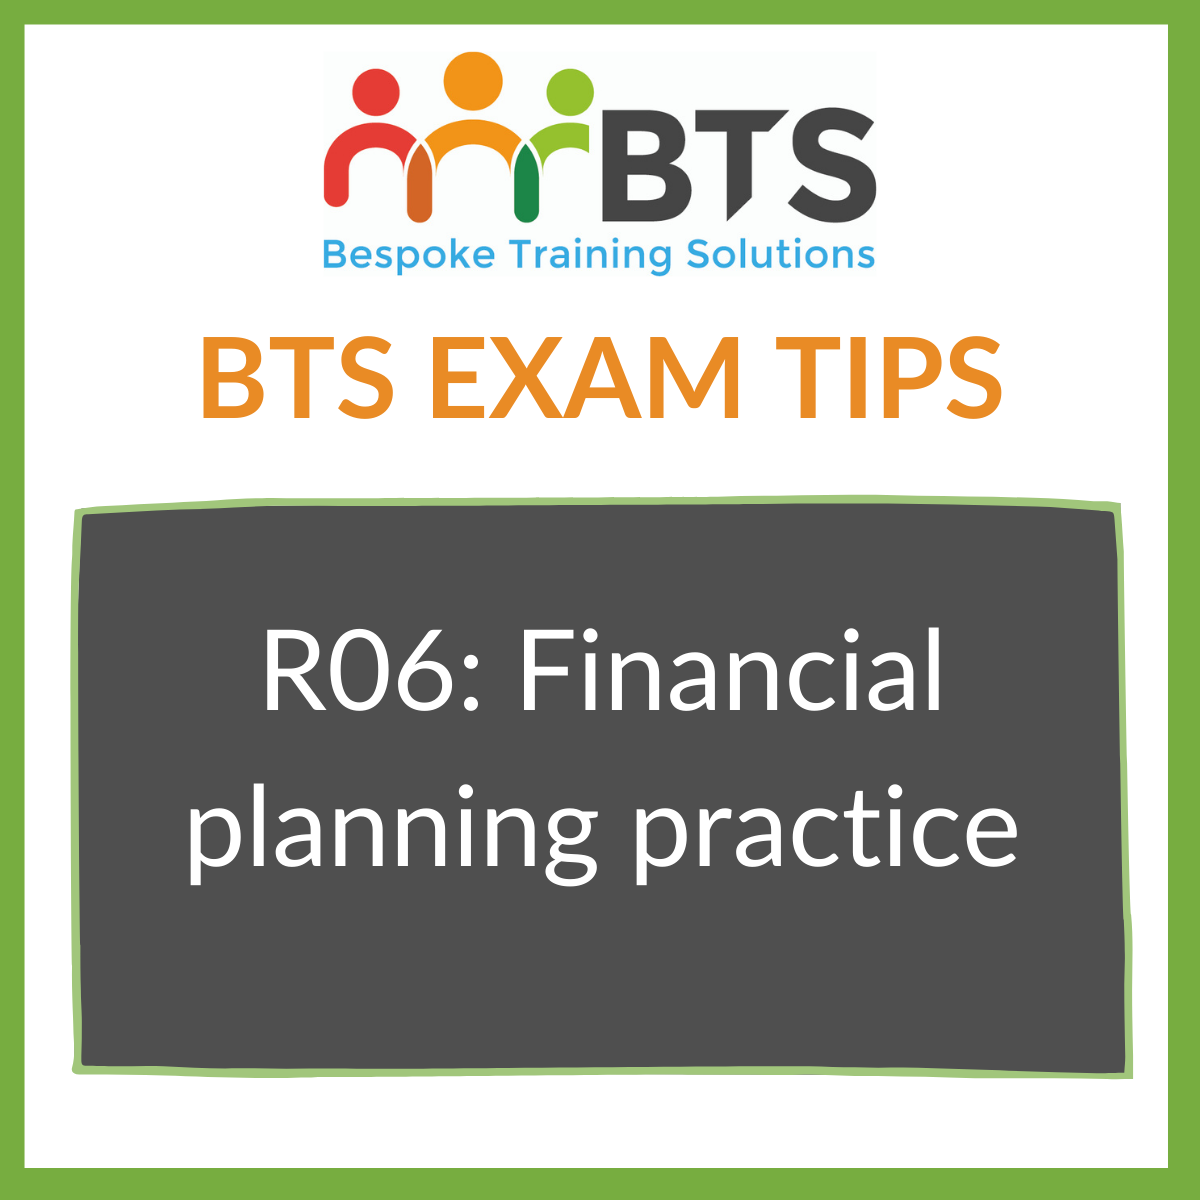 BTS Exam Tips How to Pass R06